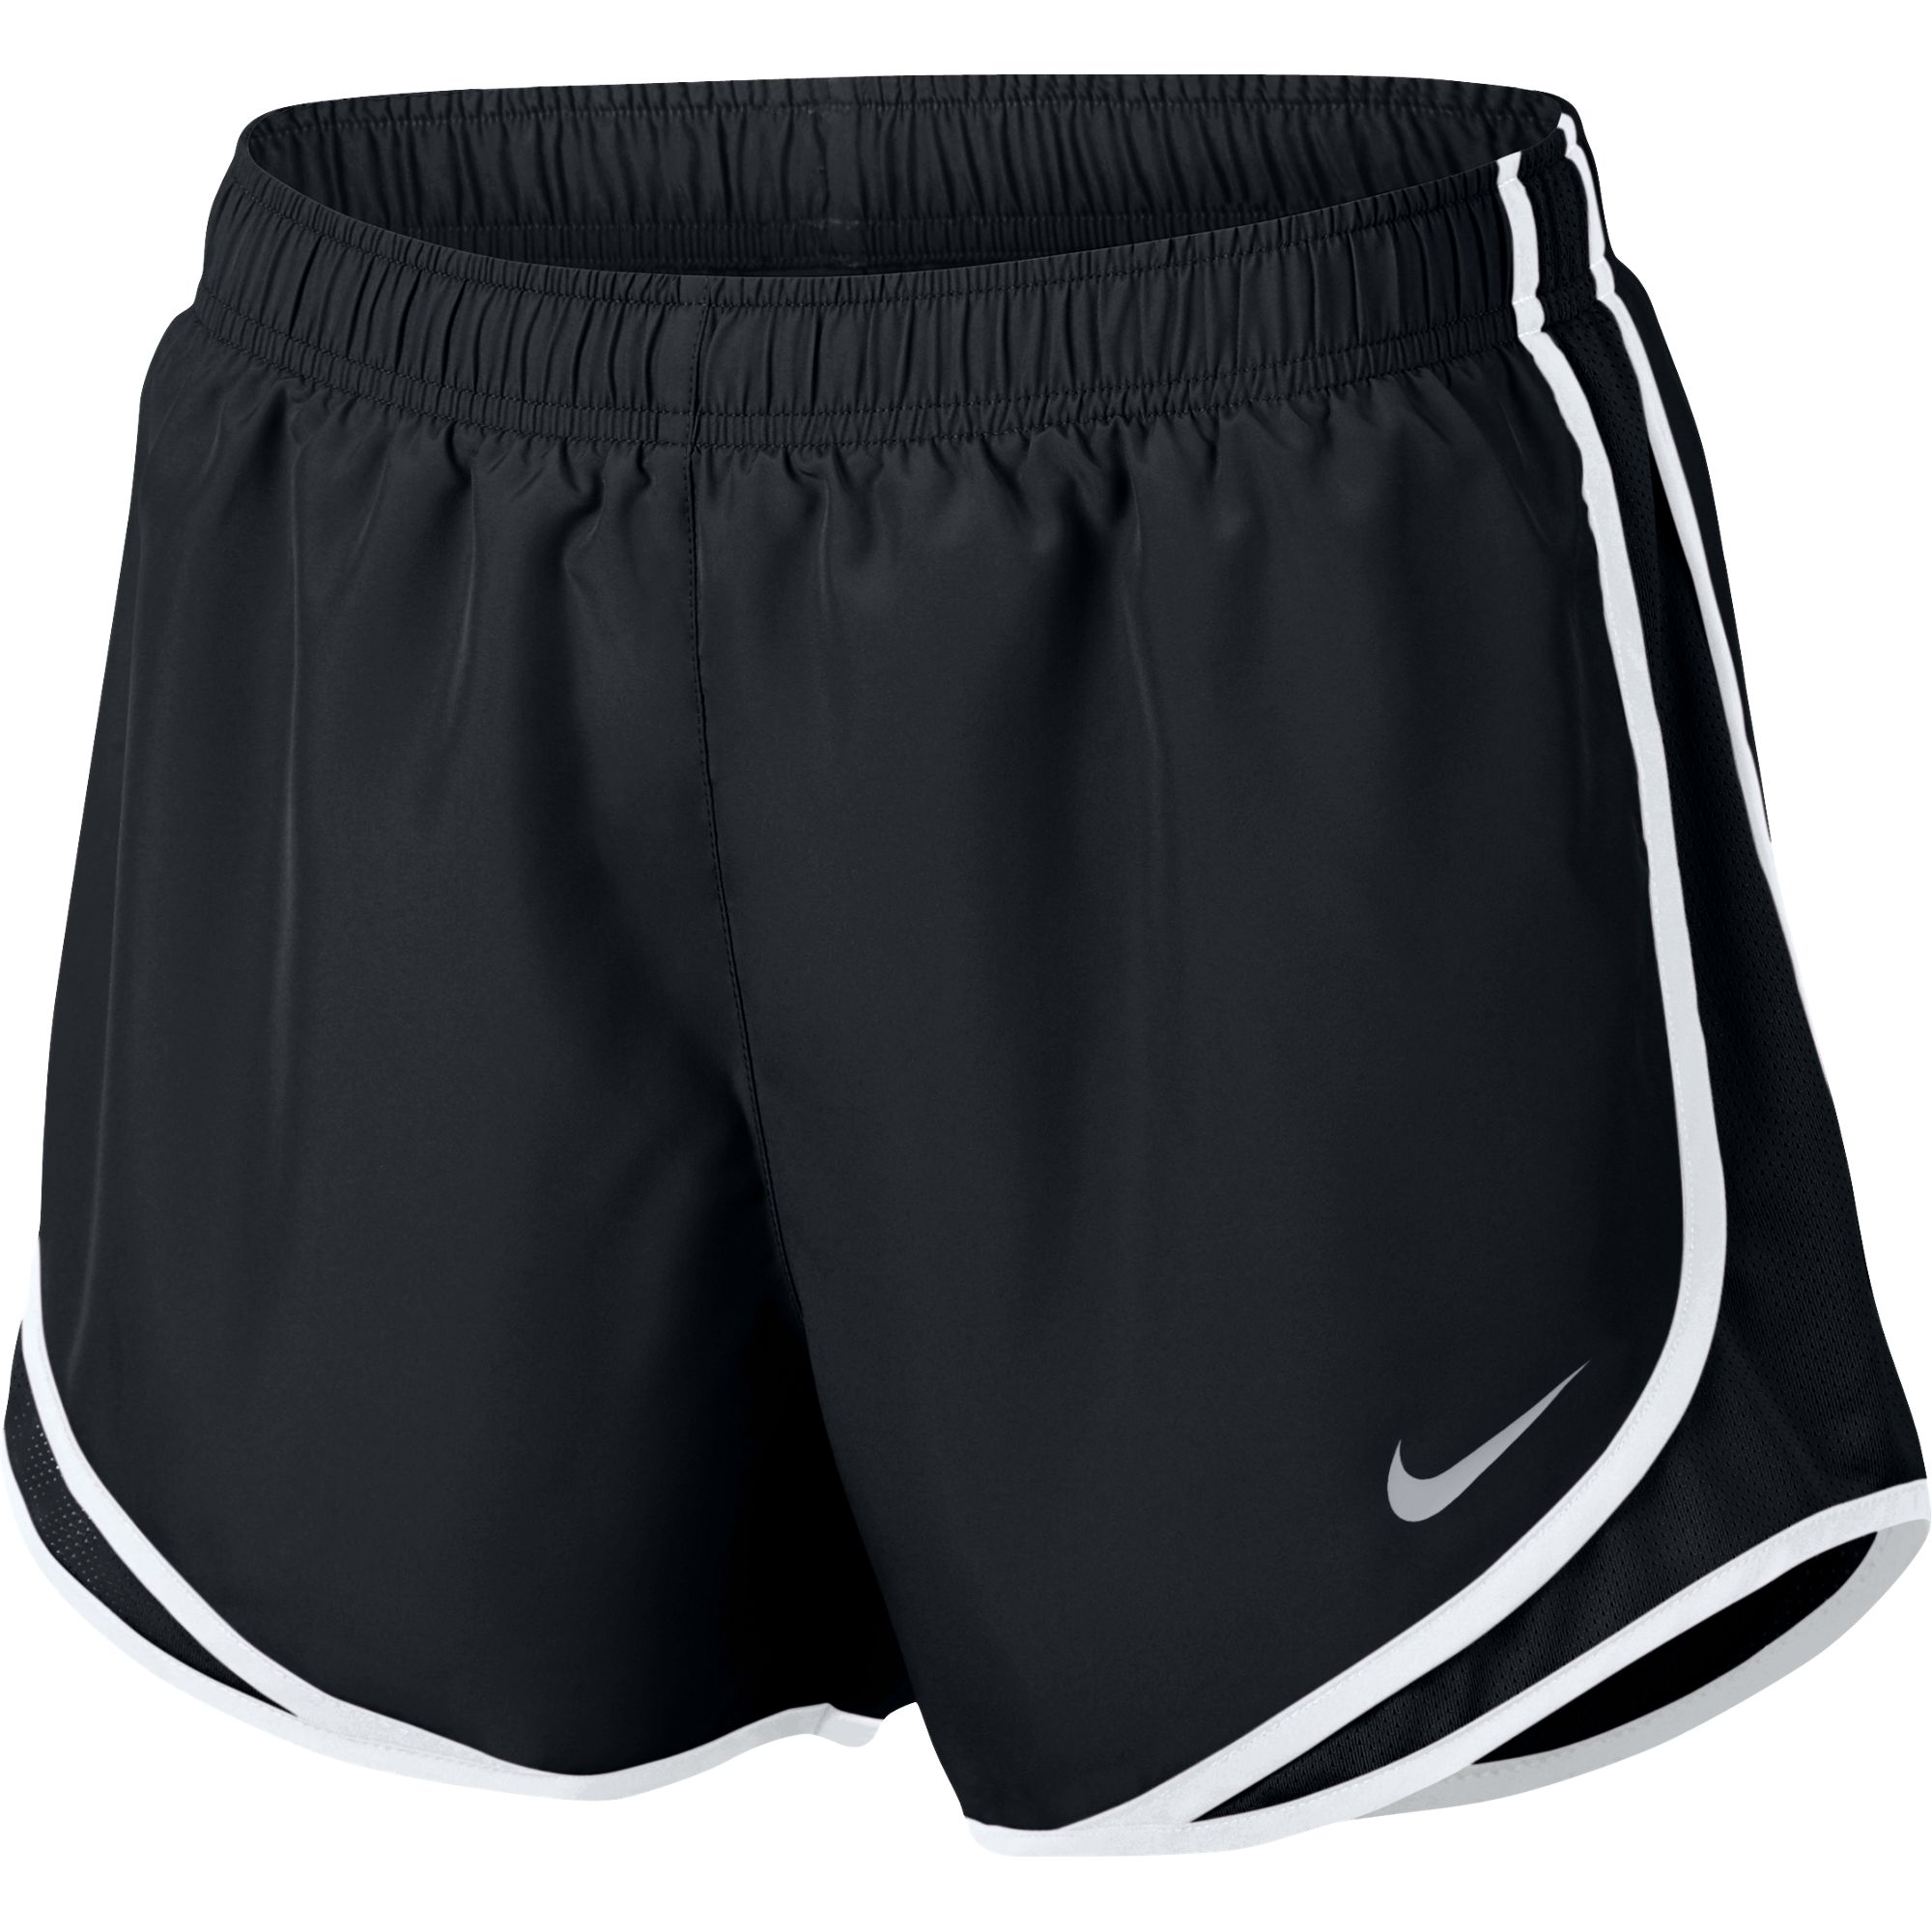 Women's Dry Tempo Short, Black/White, swatch